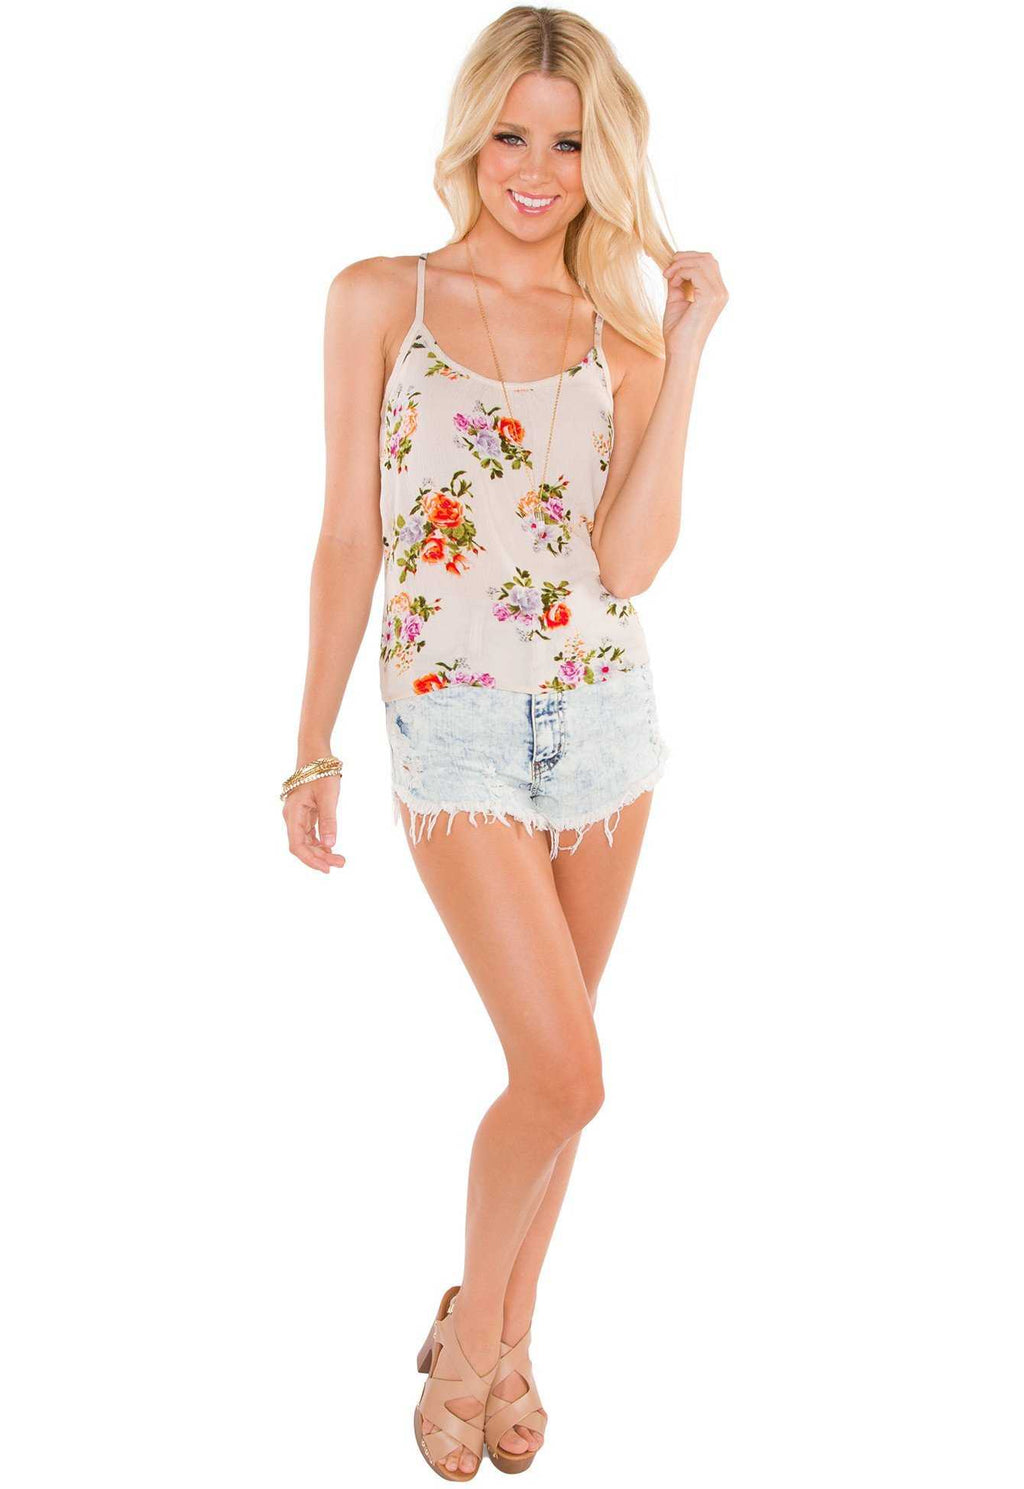 Tops - Artista Floral Top - Ivory